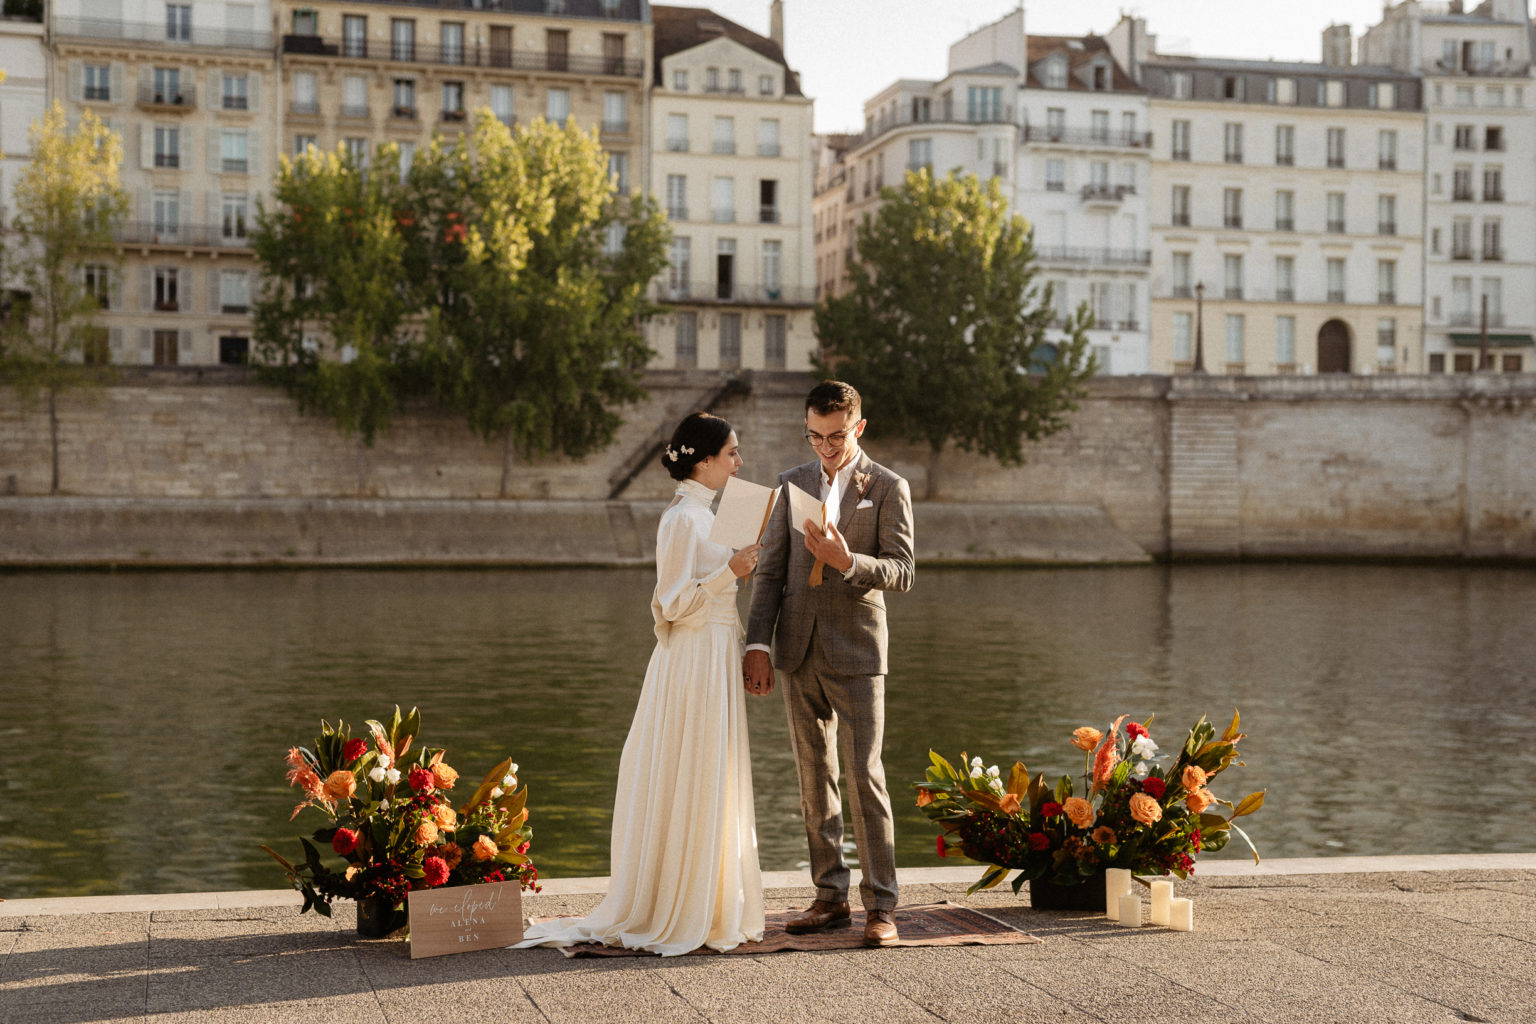 paris elopement wedding vows exchange